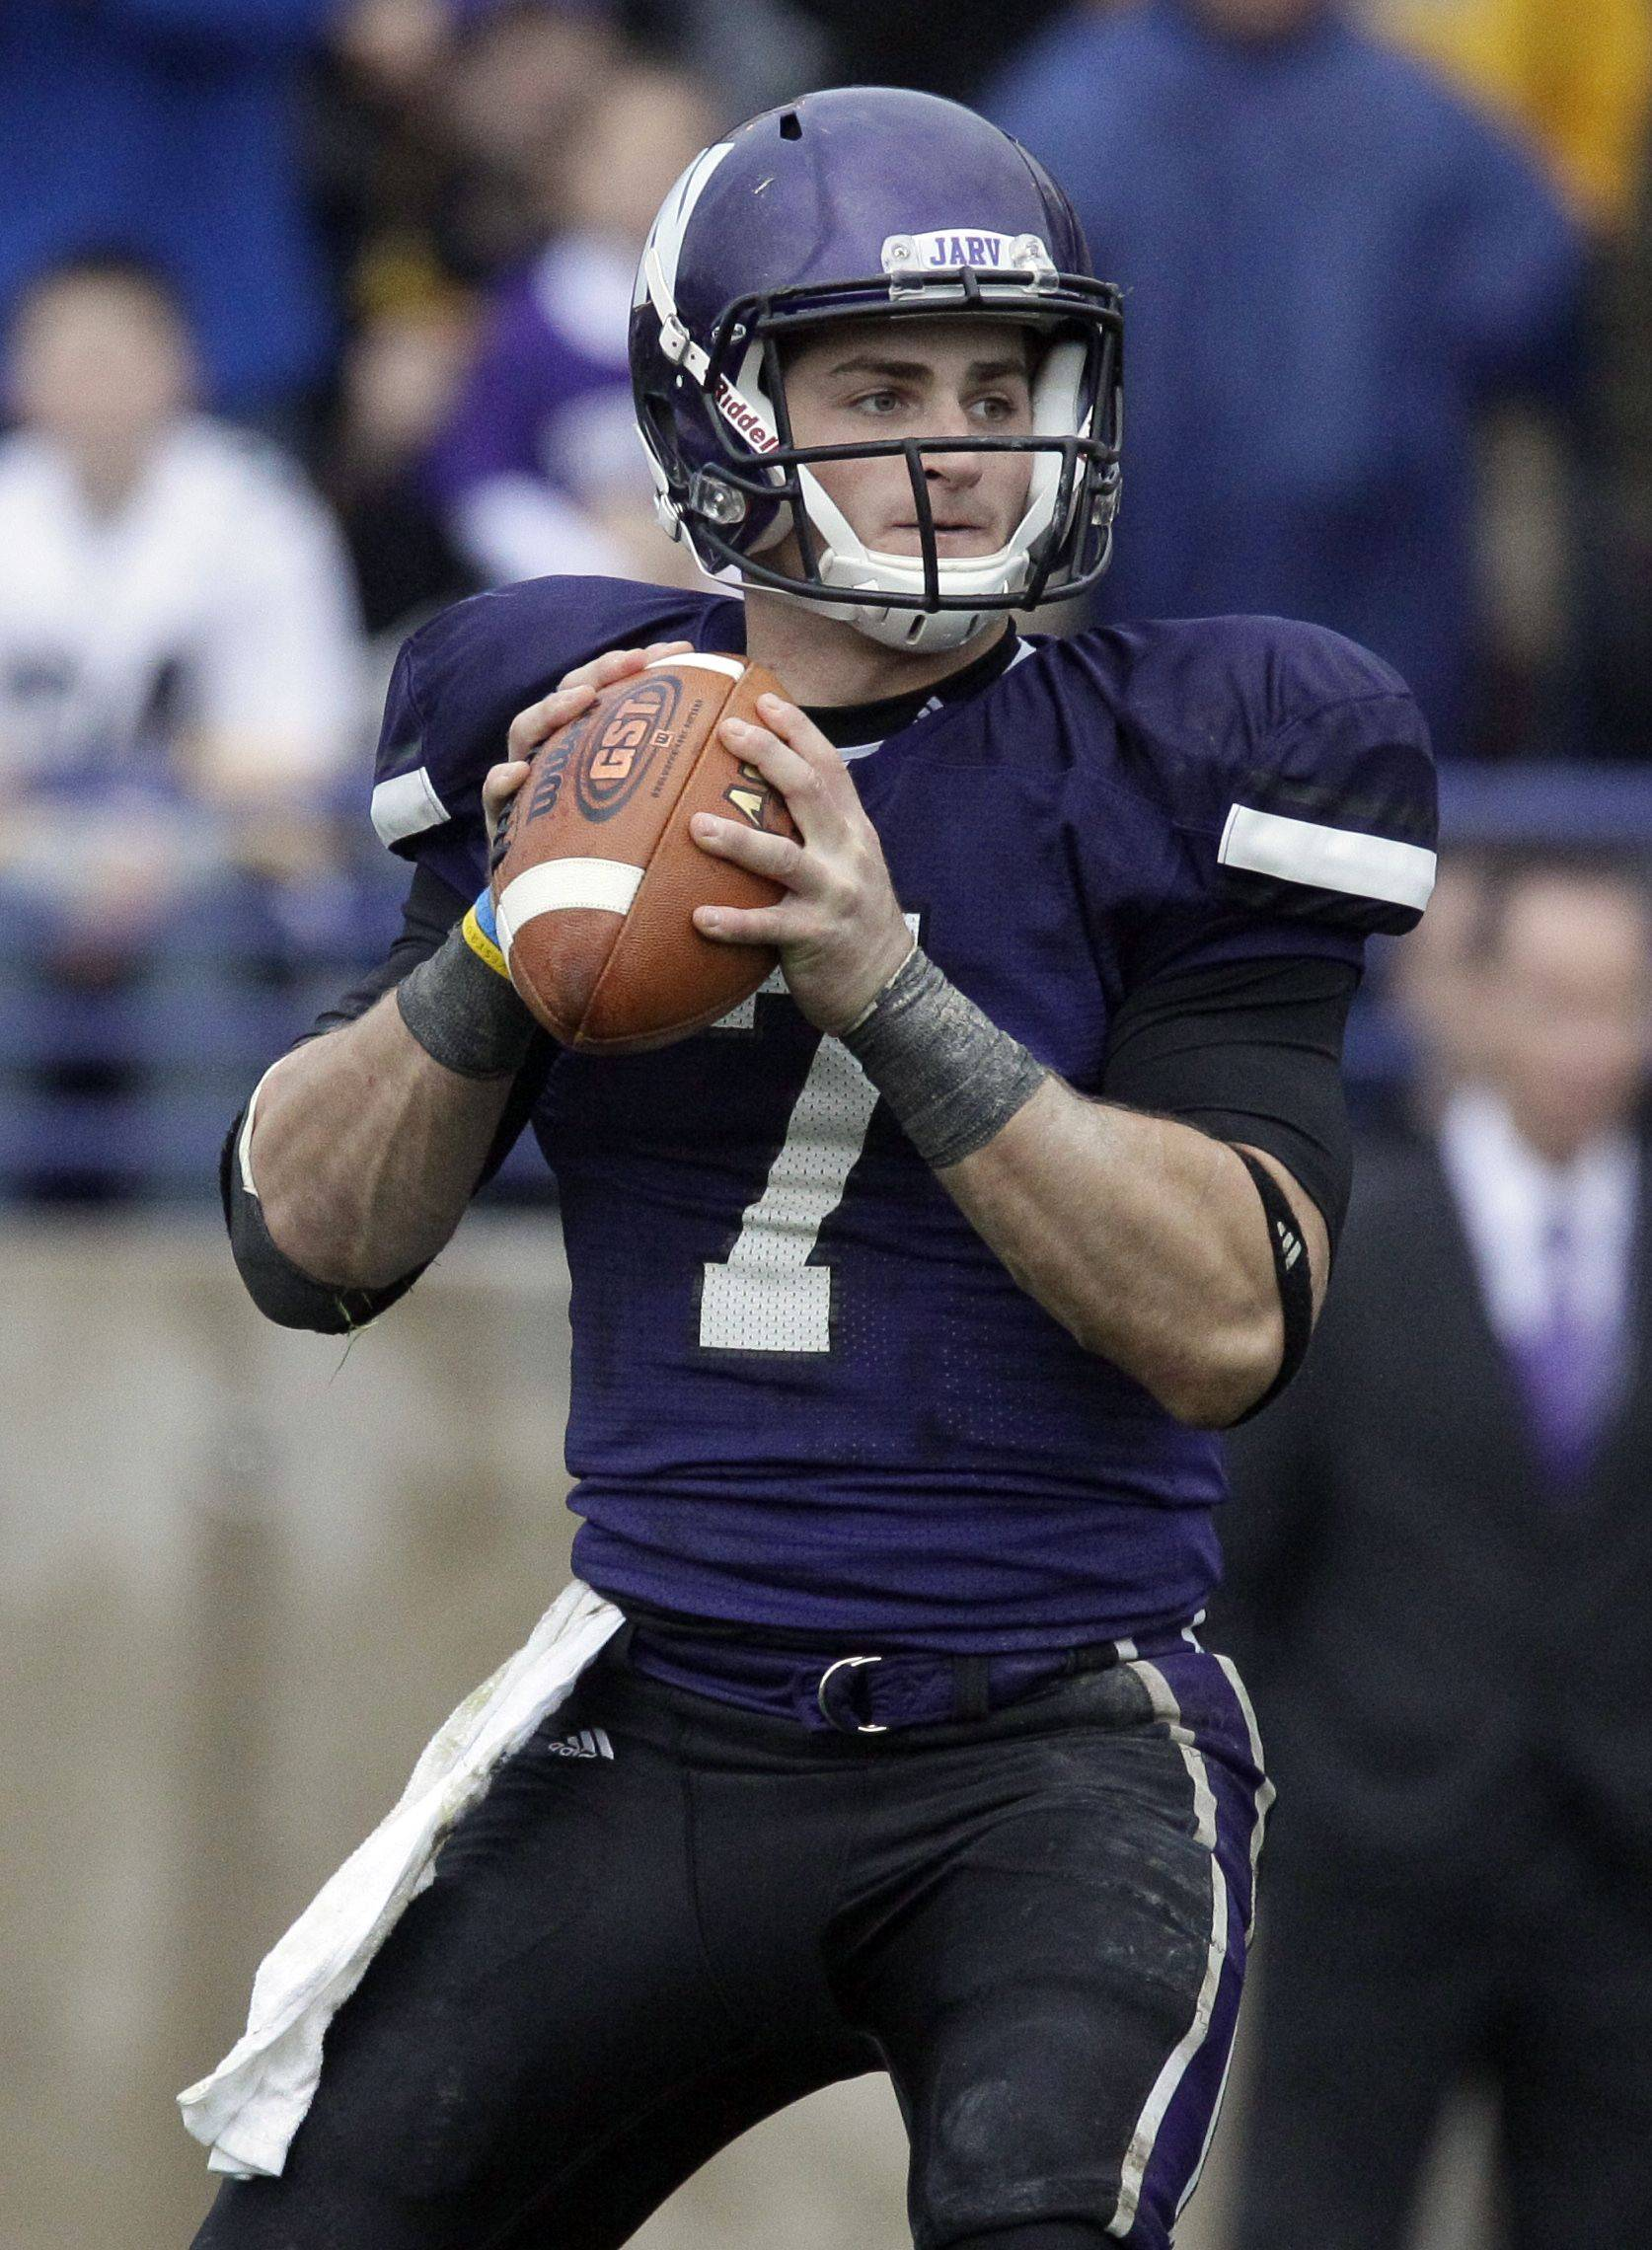 Northwestern senior quarterback Dan Persa is expected to return to action when the Wildcats face Illinois on Oct. 1. Persa has not played since rupturing his right Achilles� tendon in a game last November. Thursday he clared, �I�m ready to go.�